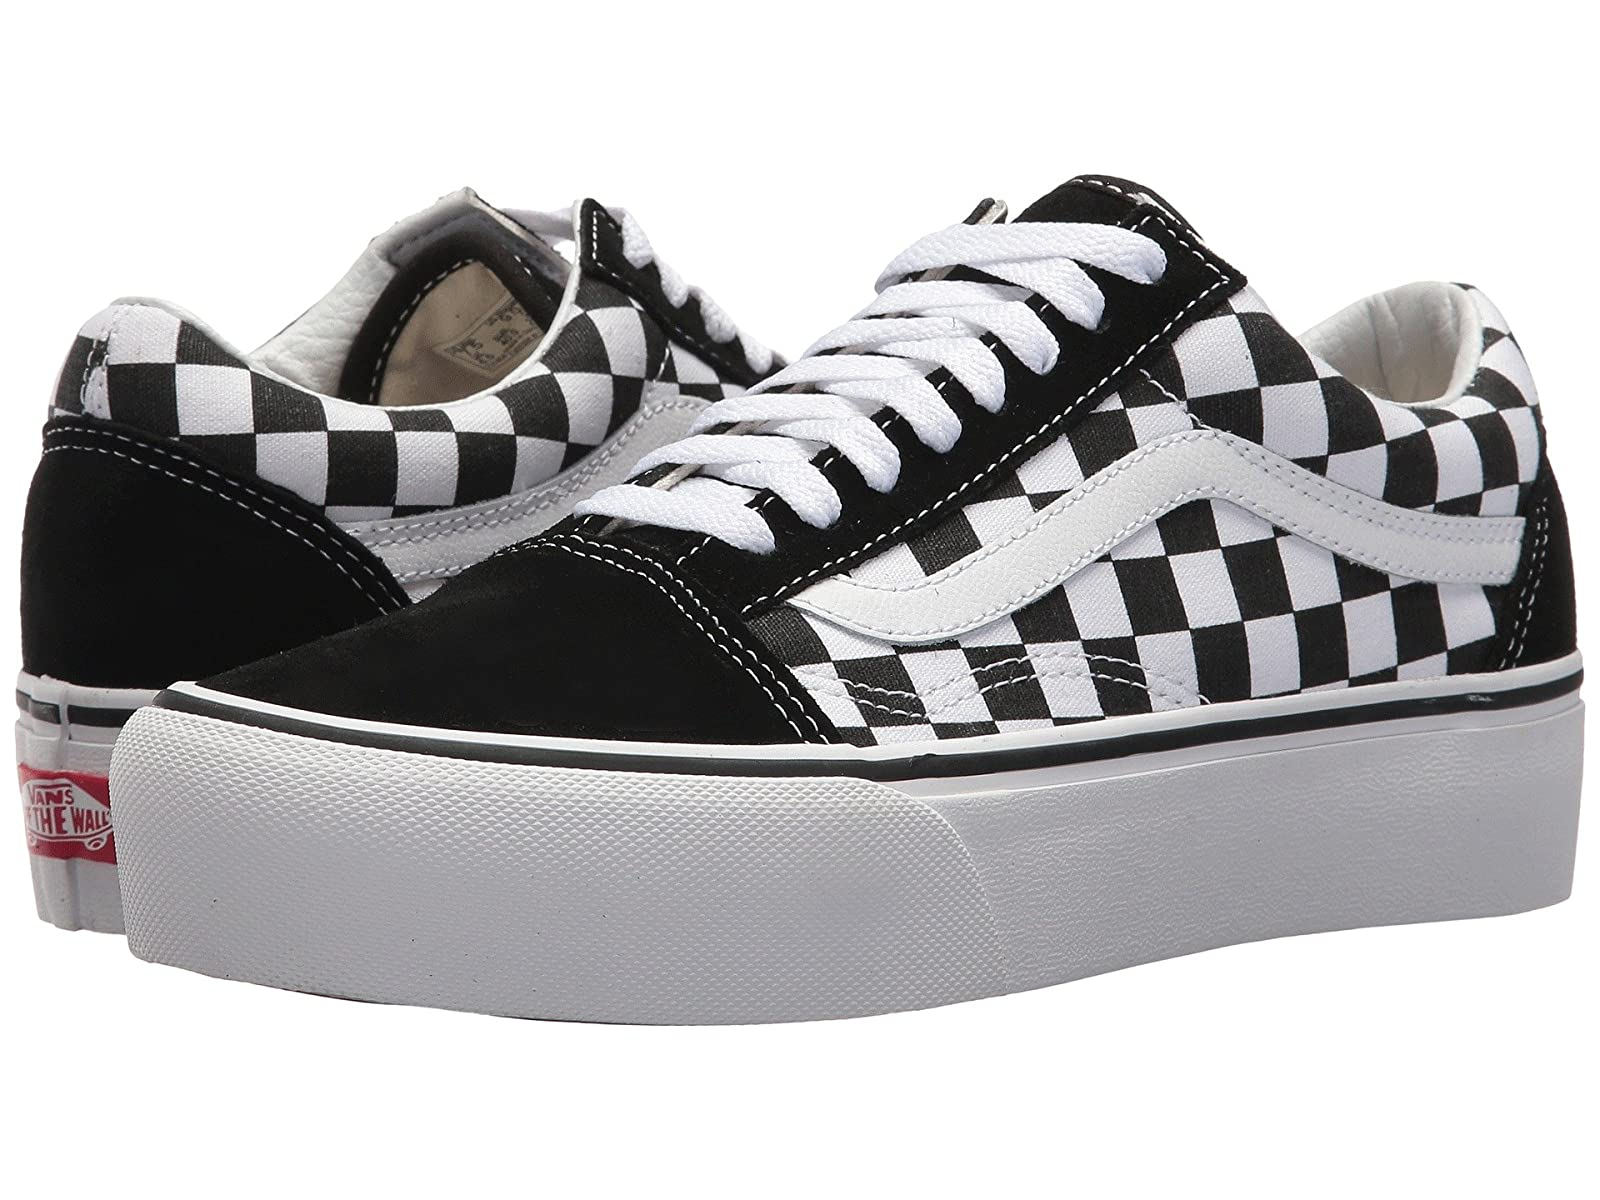 Vans Old Skool PlatformAtmospheric grades have affordable shoes